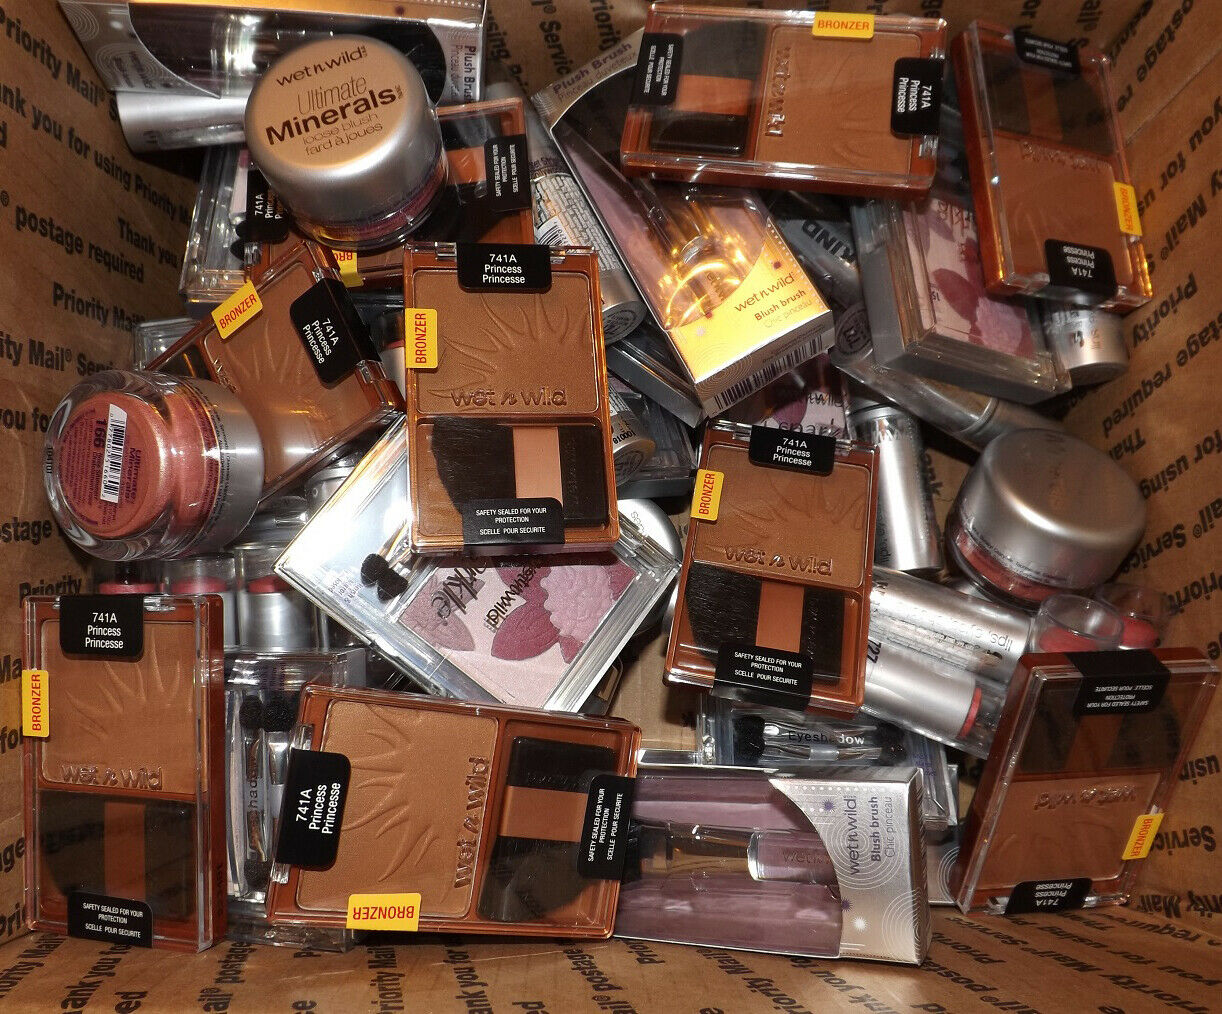 100 x Wet n Wild ASSORTED Makeup COSMETICS Wholesale Lot BLOWOUT $.68 each!